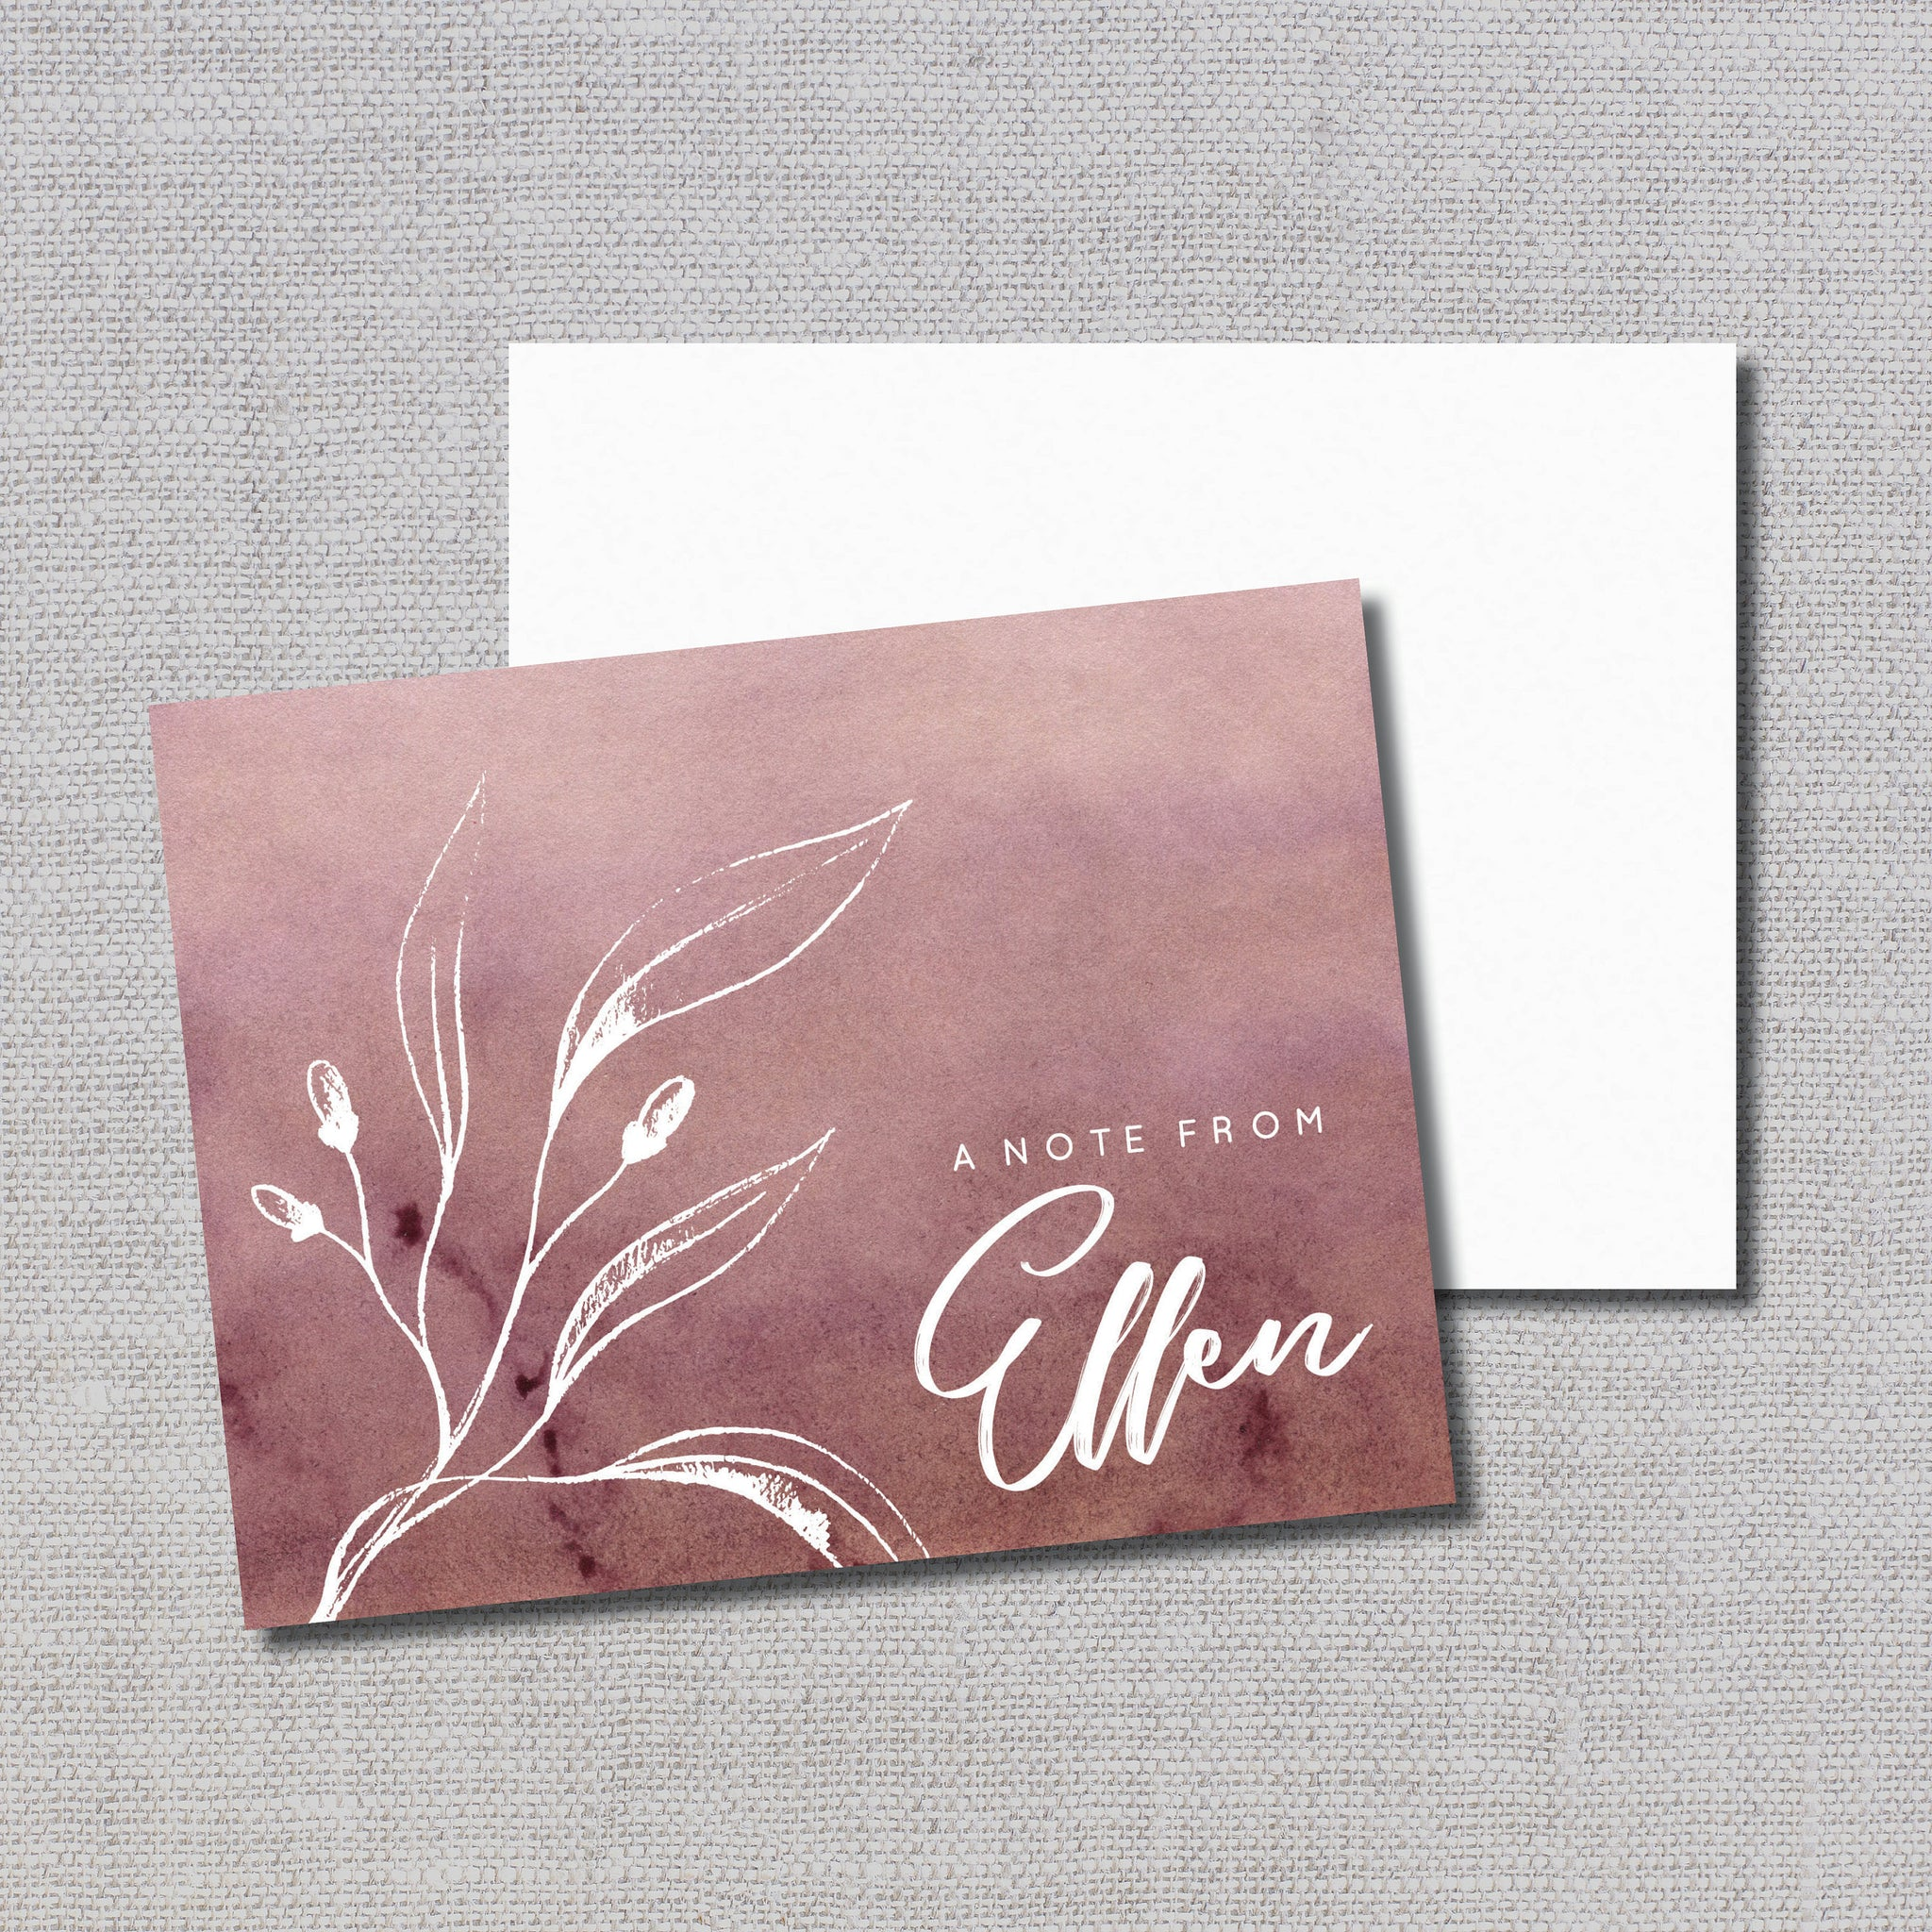 Personalized Note Cards (20) in Choice of Wine Emerald or Royal Blue Ombre & Calligraphy